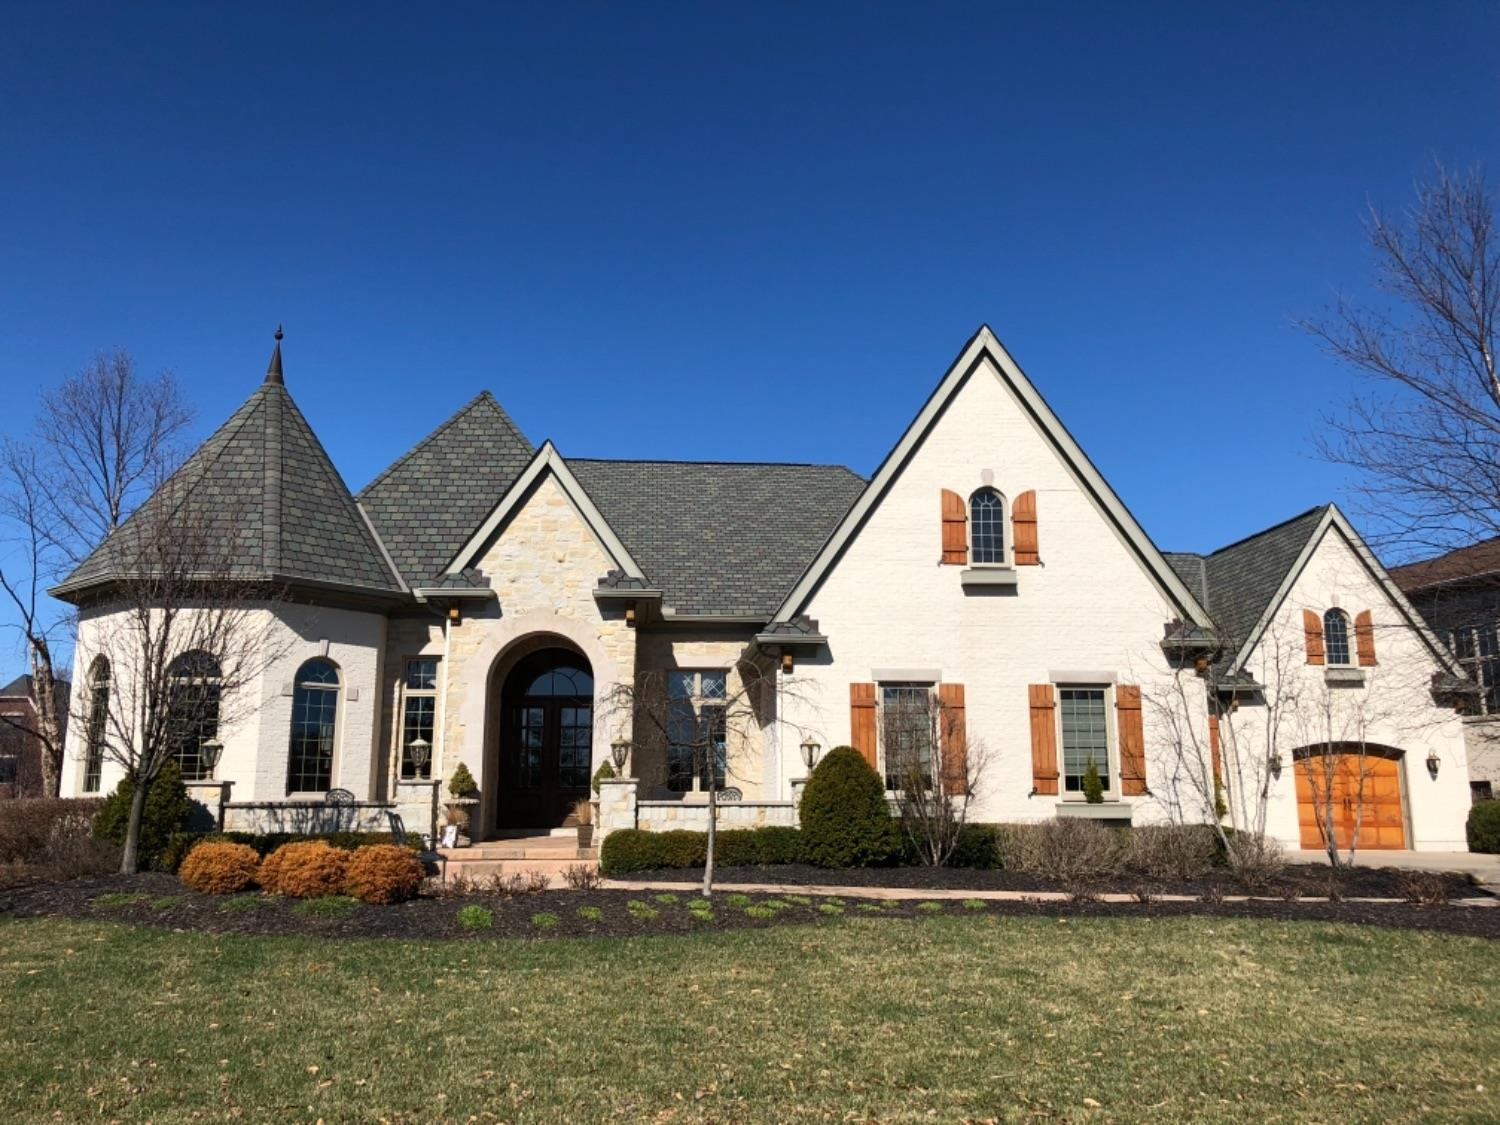 Exclusive Custom Ranch. Approx. 6500SF. 6 Homearama Awards. Sophisticated, Elegant Finishes. Outdoor Living at its Finest. Prestigious Water Views. Gorgeous Kitchen opens to Lg. Hearth Rm w/ Coffered Ceilings & Wet Bar. Stunning Study & Mstr Bd. LL Features Exercise Rm, Billiards, Media Rm, Wet Bar & Guest Suite. Private Salt Water Pool.